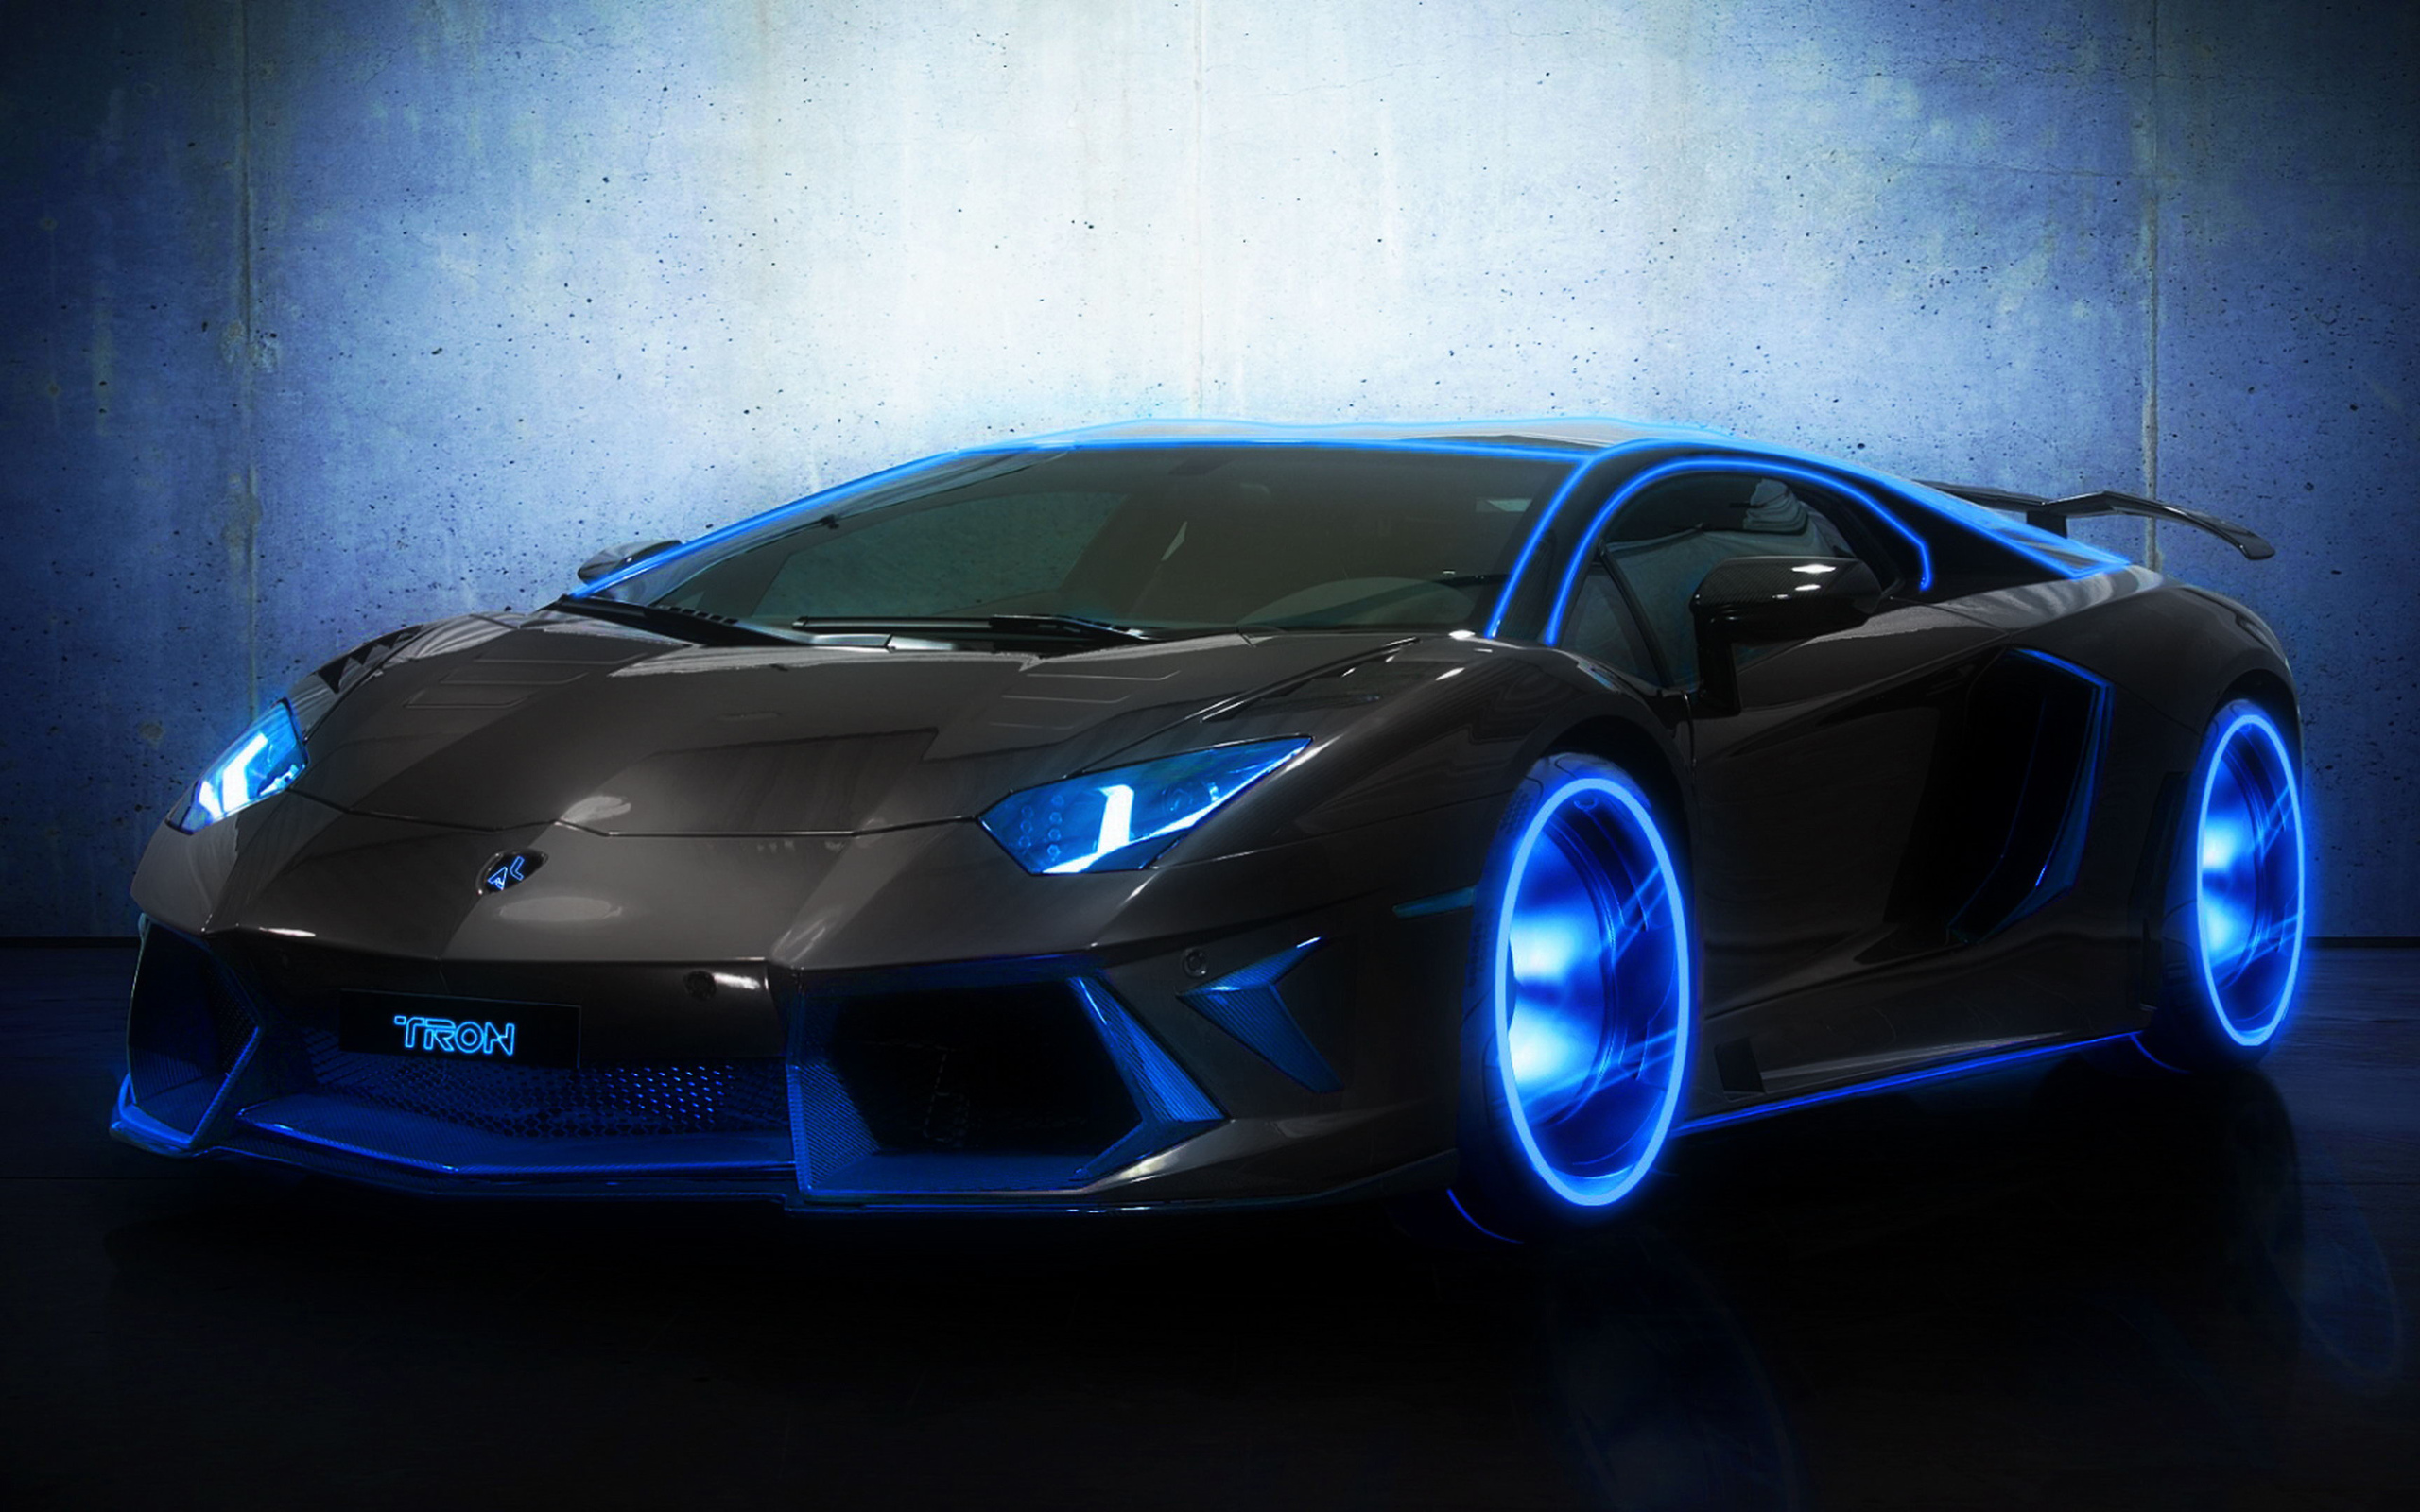 335 lamborghini aventador hd wallpapers | background images